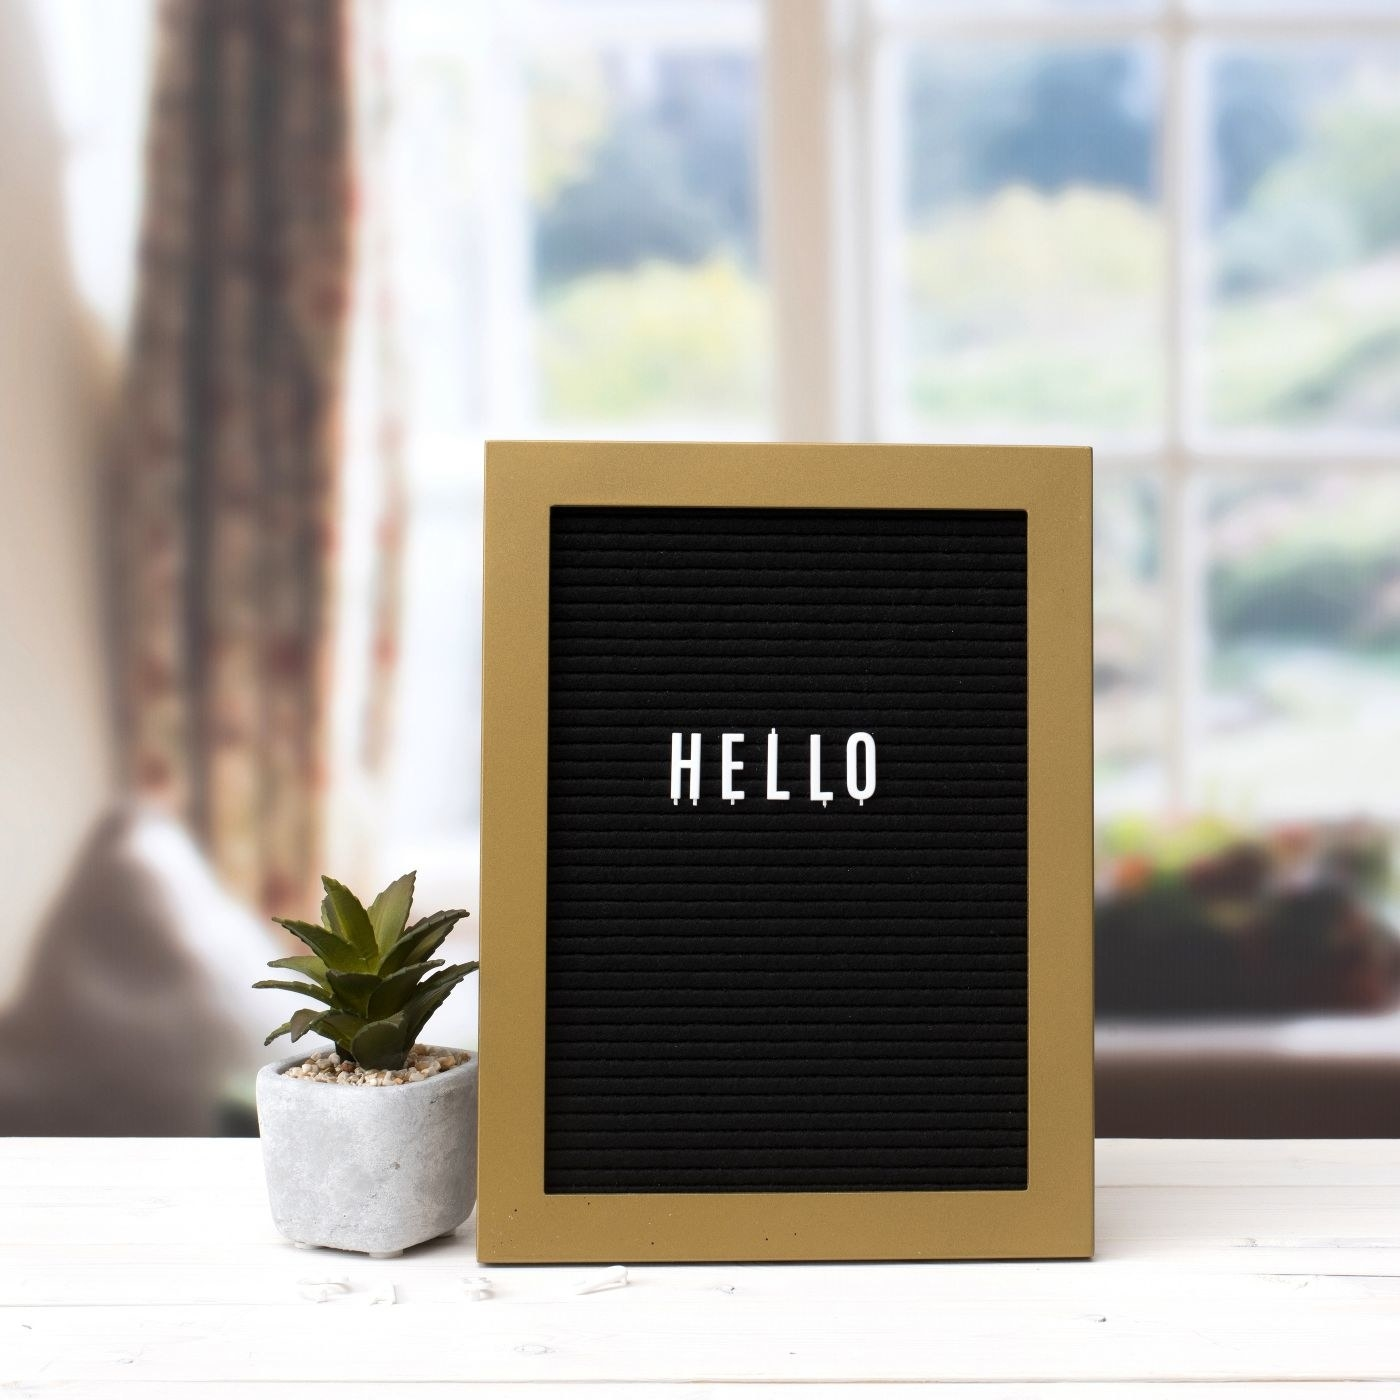 Black letterboard with white letters and gold frame beside a tiny green plant